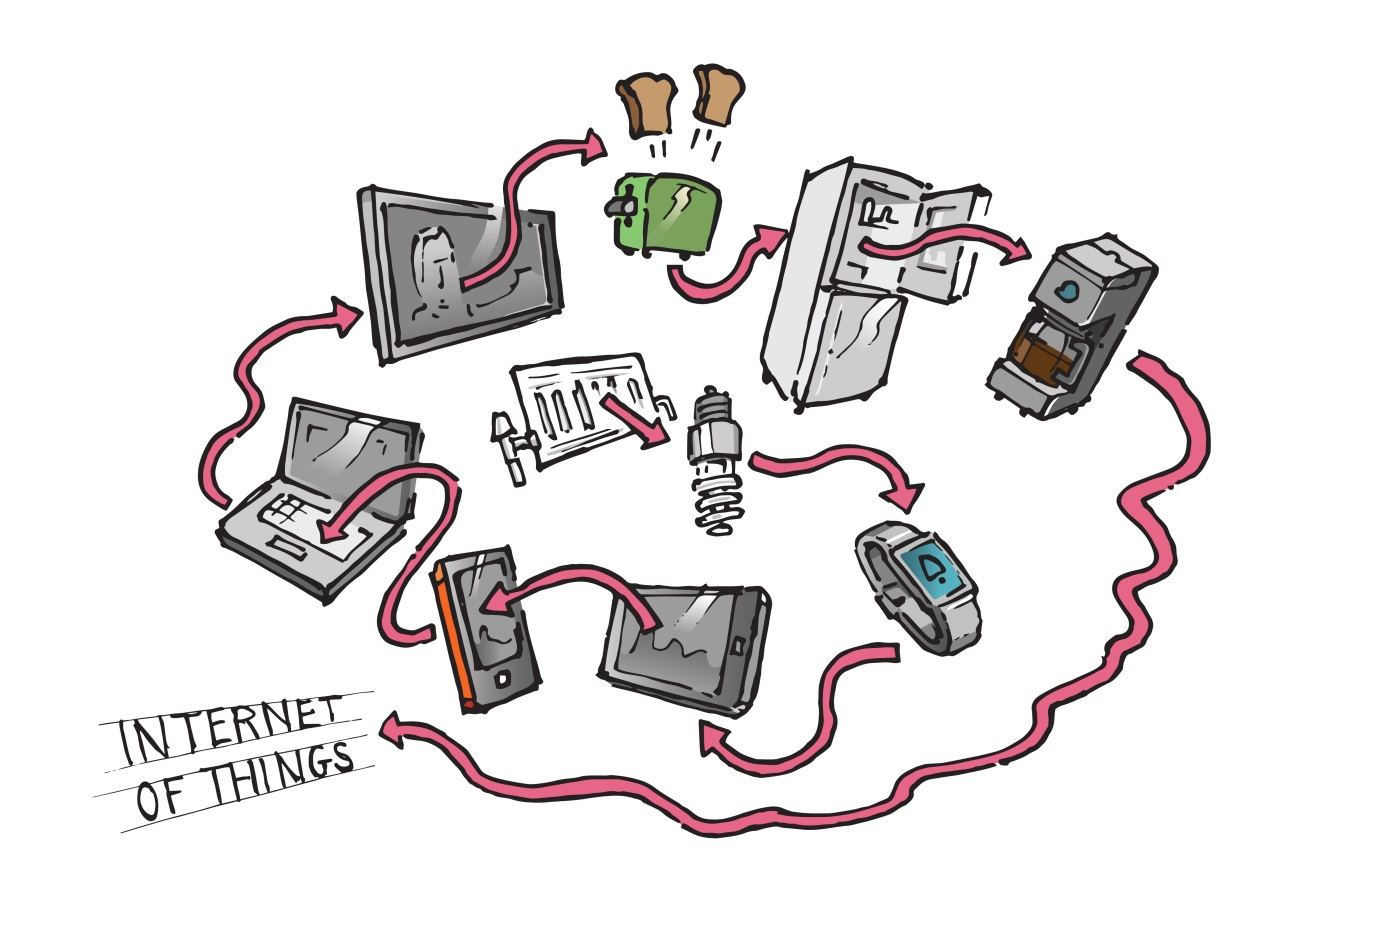 An increasingly connected world through the Internet of Things. Source: CCJ Digital